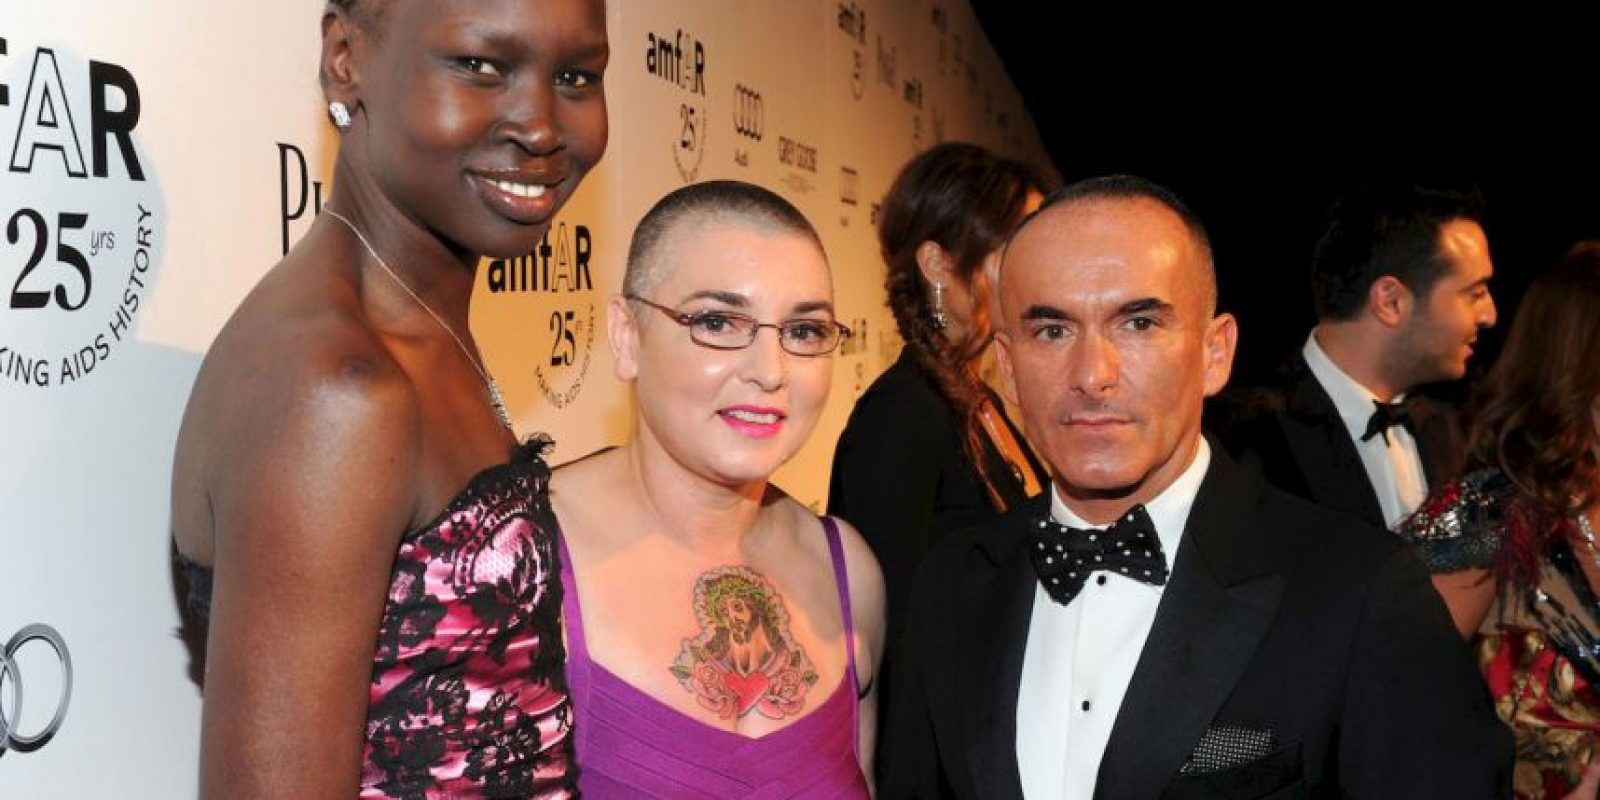 "En 1992, la carrera de Sinead O'Connor sufrió un golpe importante cuando apareció en el programa estadounidense ""Saturday Night Live"" como invitada musical. Foto: Getty Images"